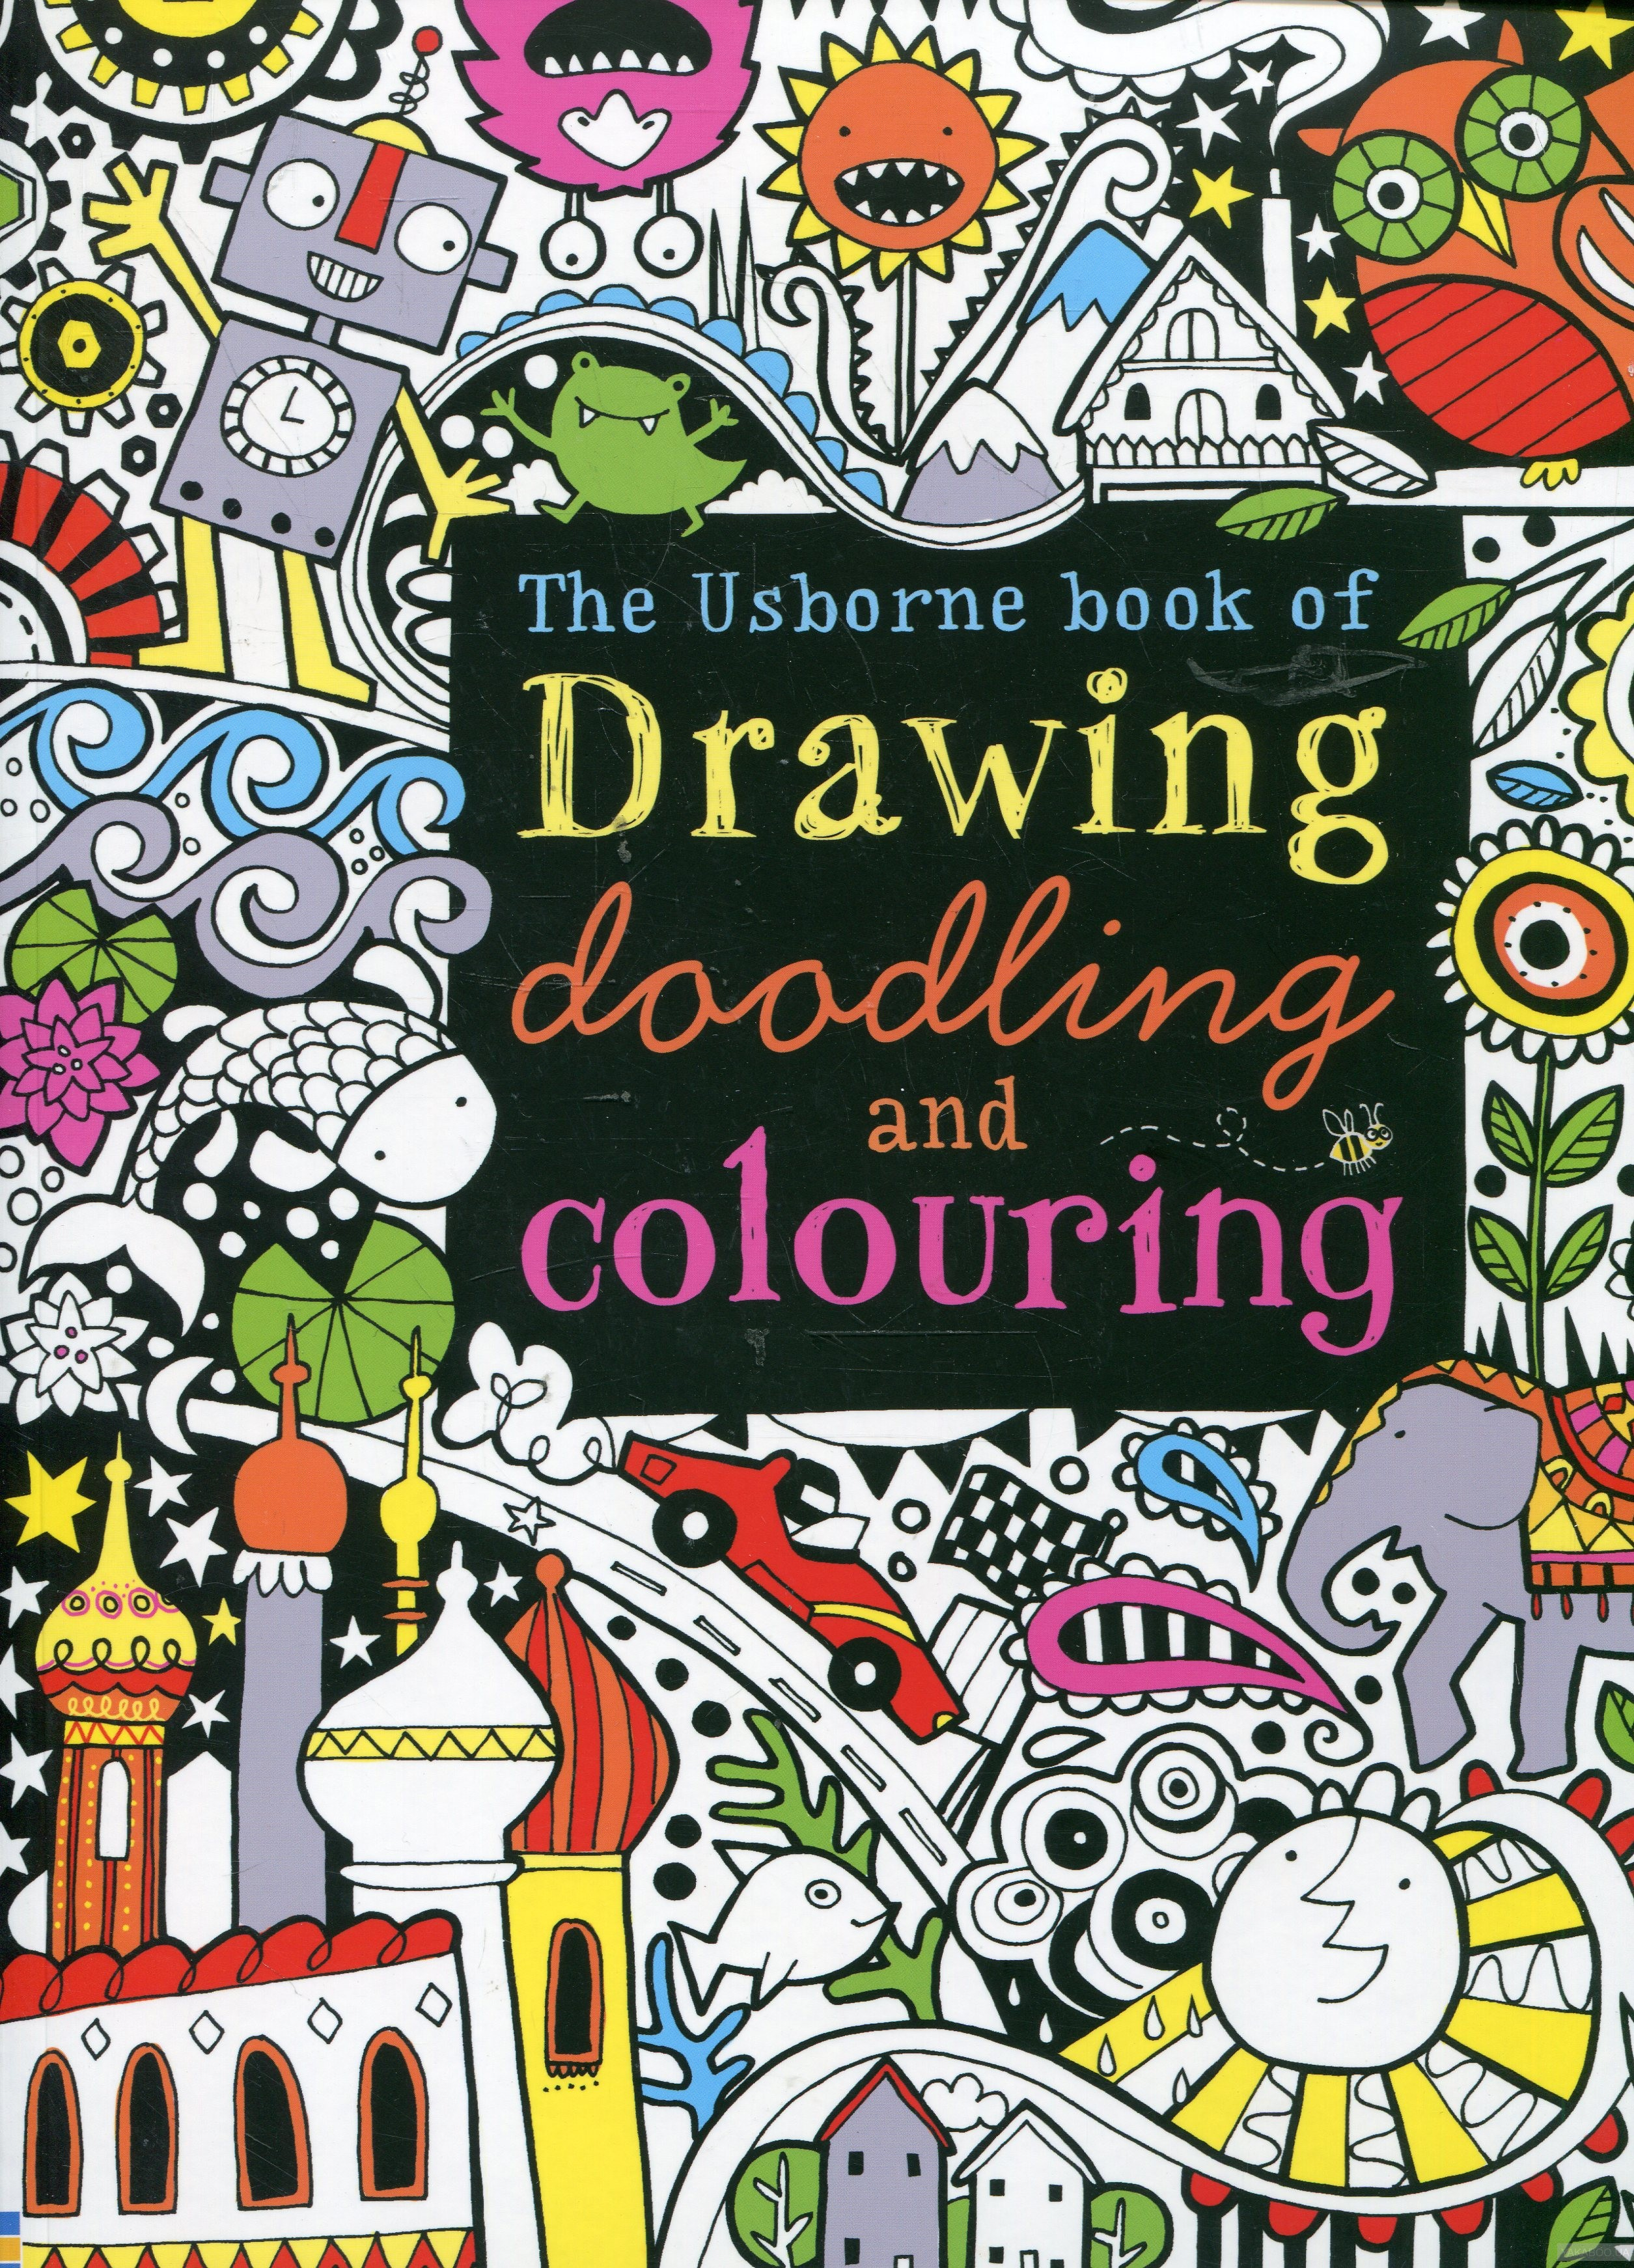 The Usborne Book of Drawing, Doodling and Coloring фото